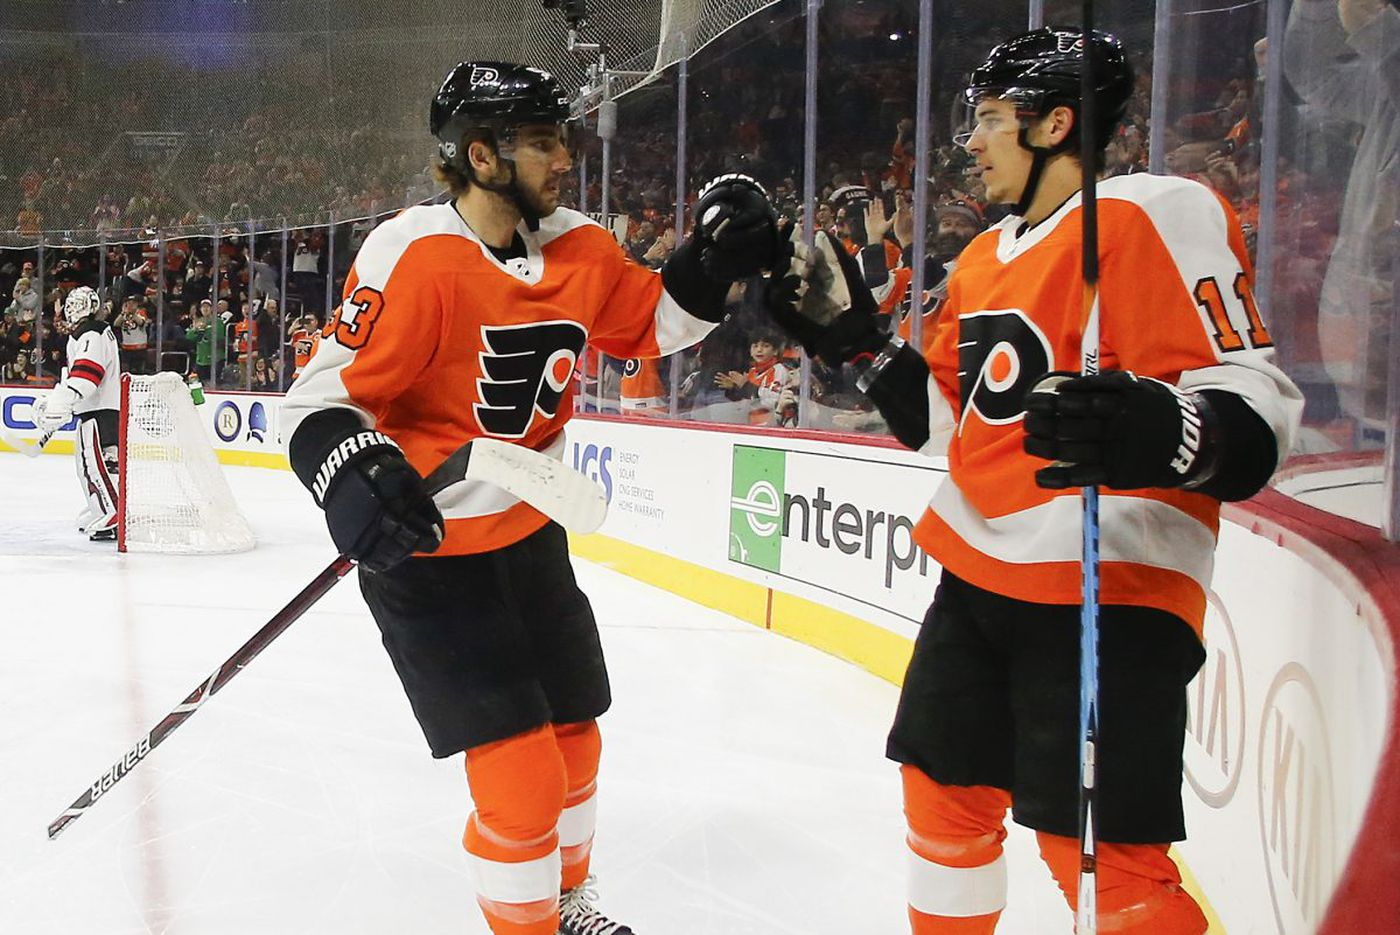 Soaring Flyers take winning streak to Detroit